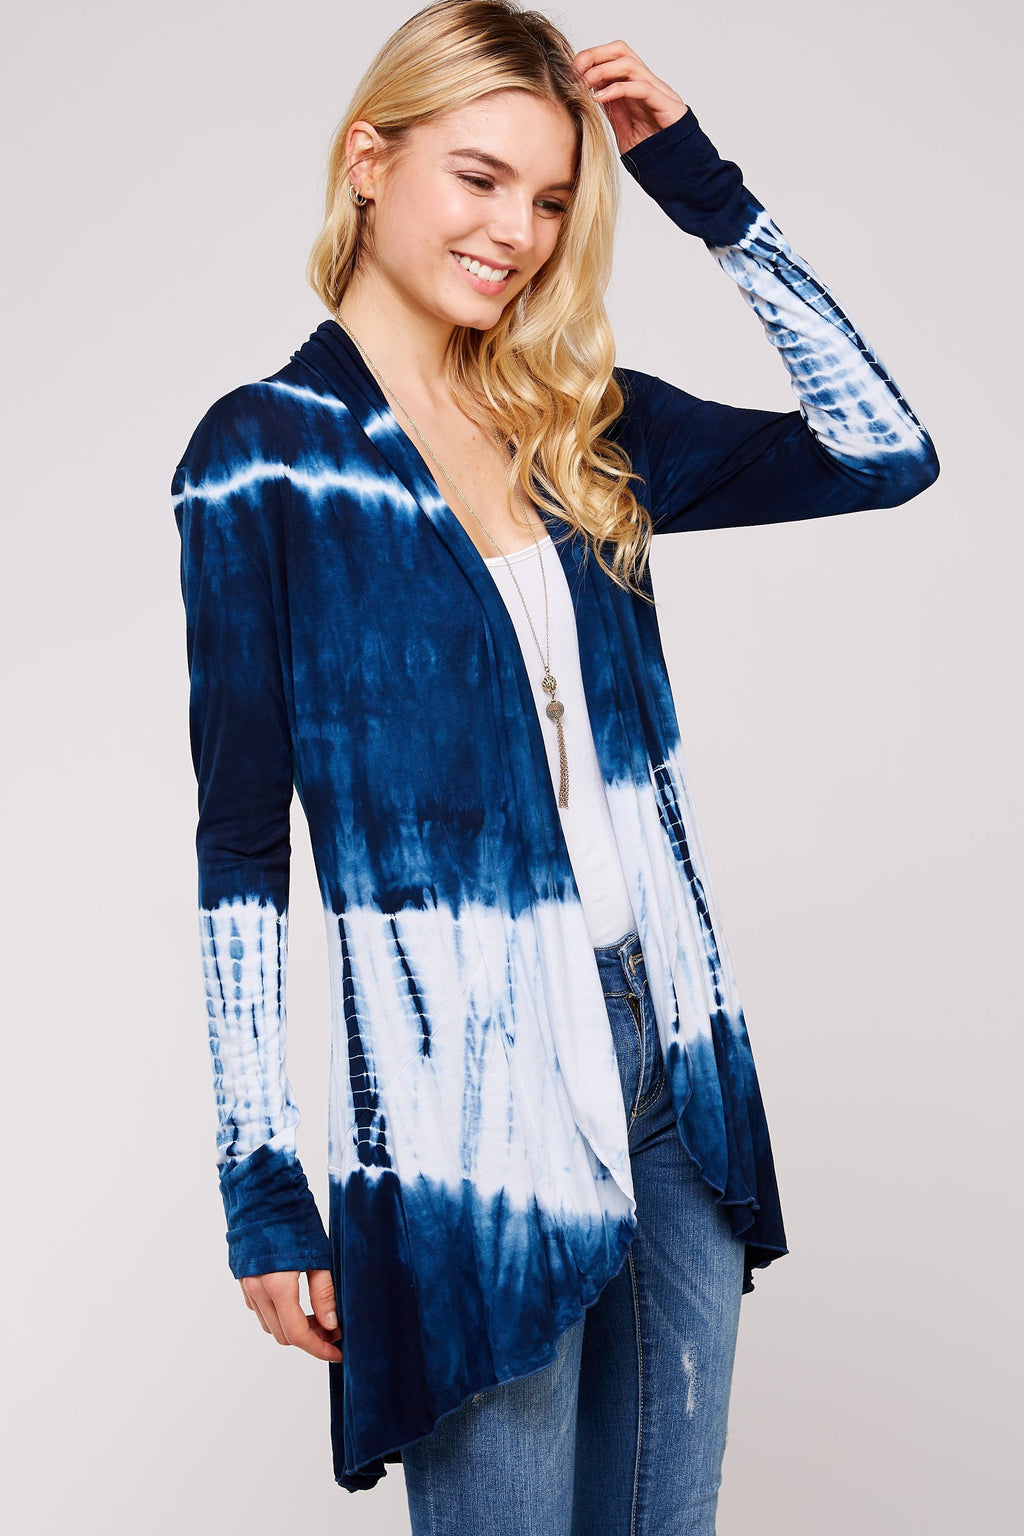 Wholesale Clothing, Online Wholesale Clothing, Women Clothing, Bohemian, Free People, tiedye, specialty wash, wholesale seller, wholesale women clothing shop, gypsy look, USA made, URBAN X FULL-SIZE-FULL SIZE RUN-UCRP3004D, fashiontrend2019